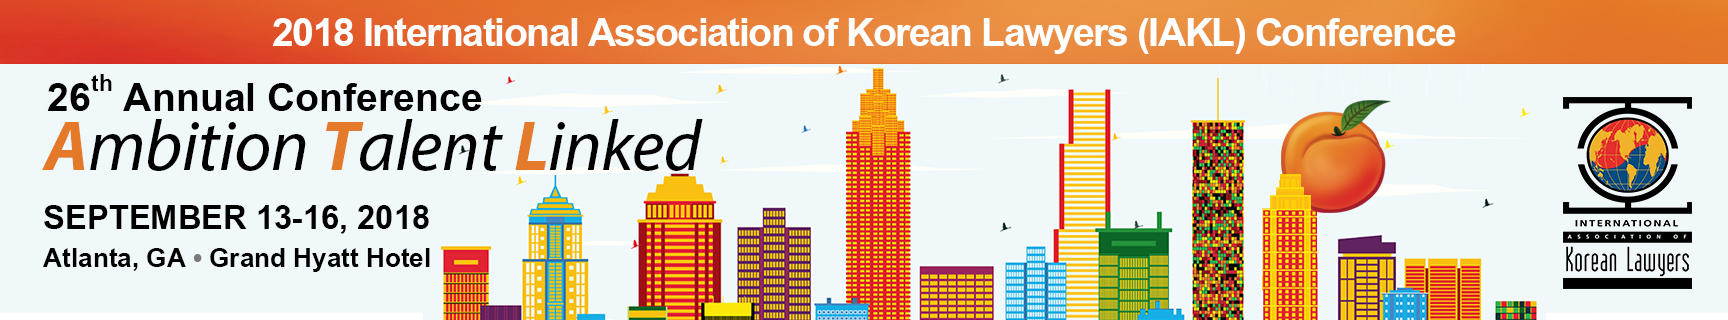 2018 International Association of Korean Lawyers Conference